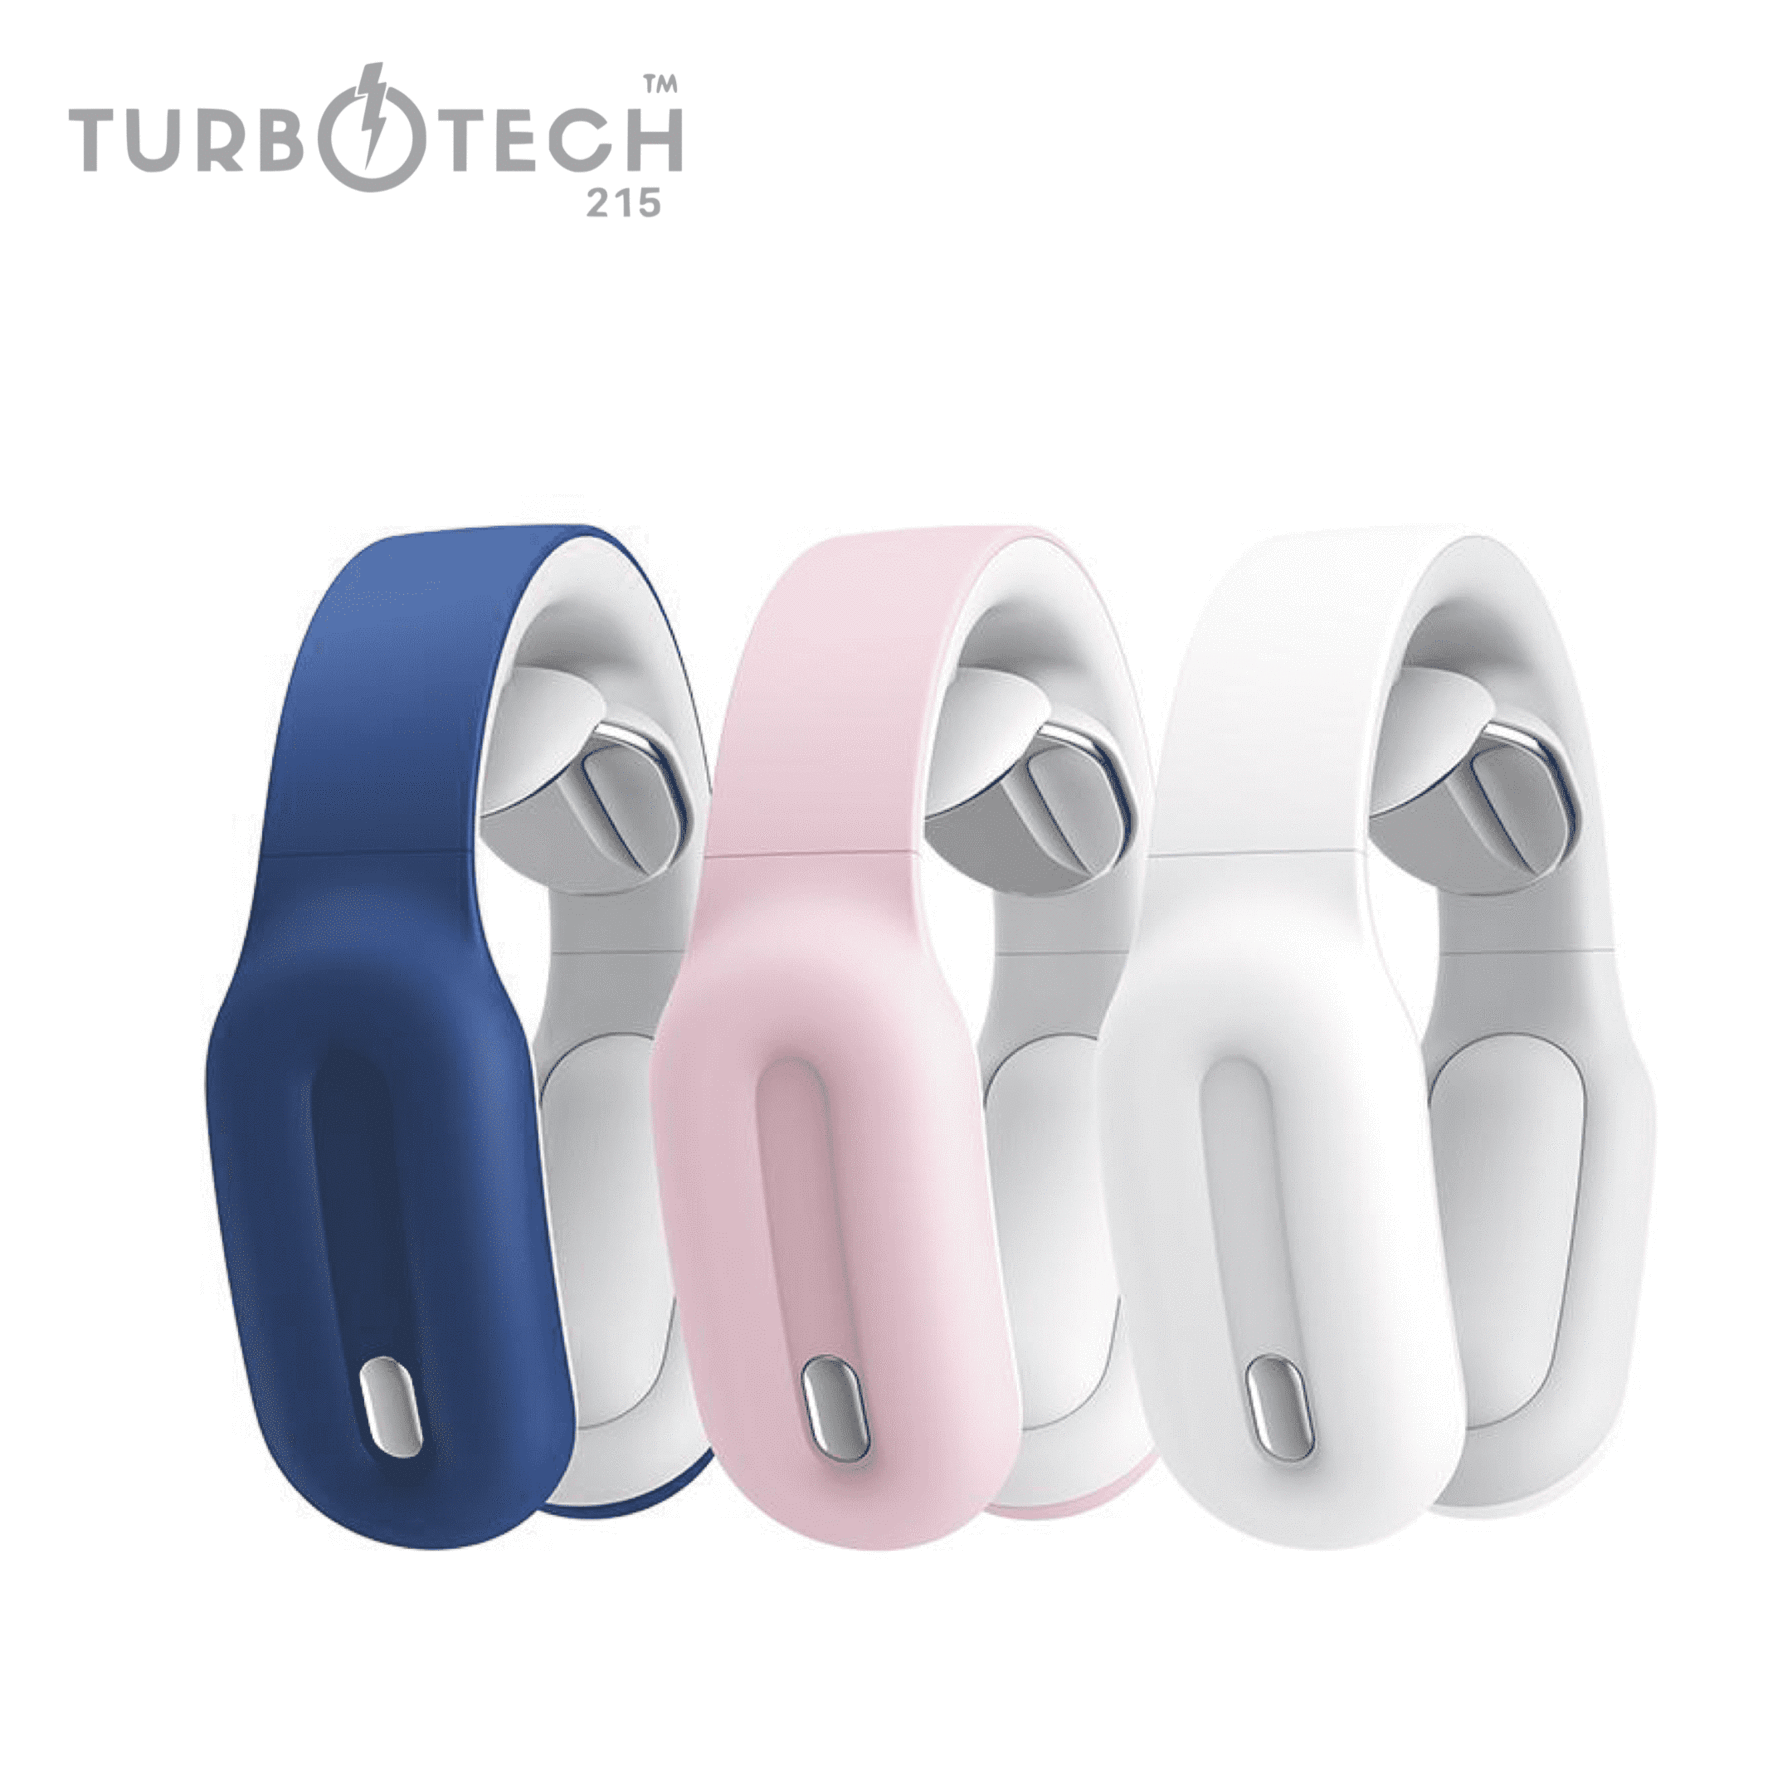 TurboTech215® Mobile Accessories Collection